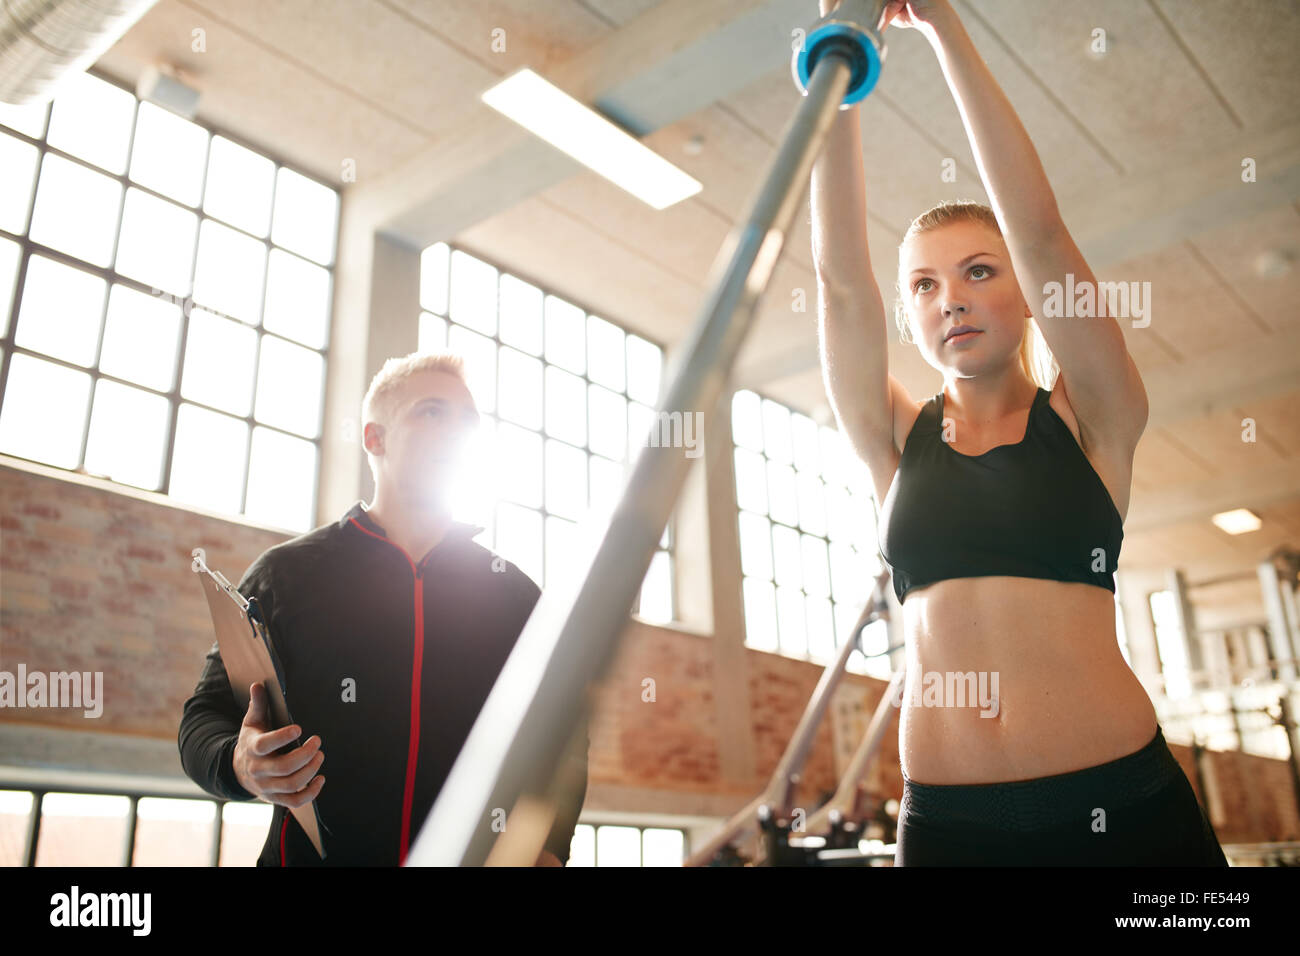 Female working out with her personal trainer in gym. Young woman exercising with a barbell in the gym with her fitness - Stock Image